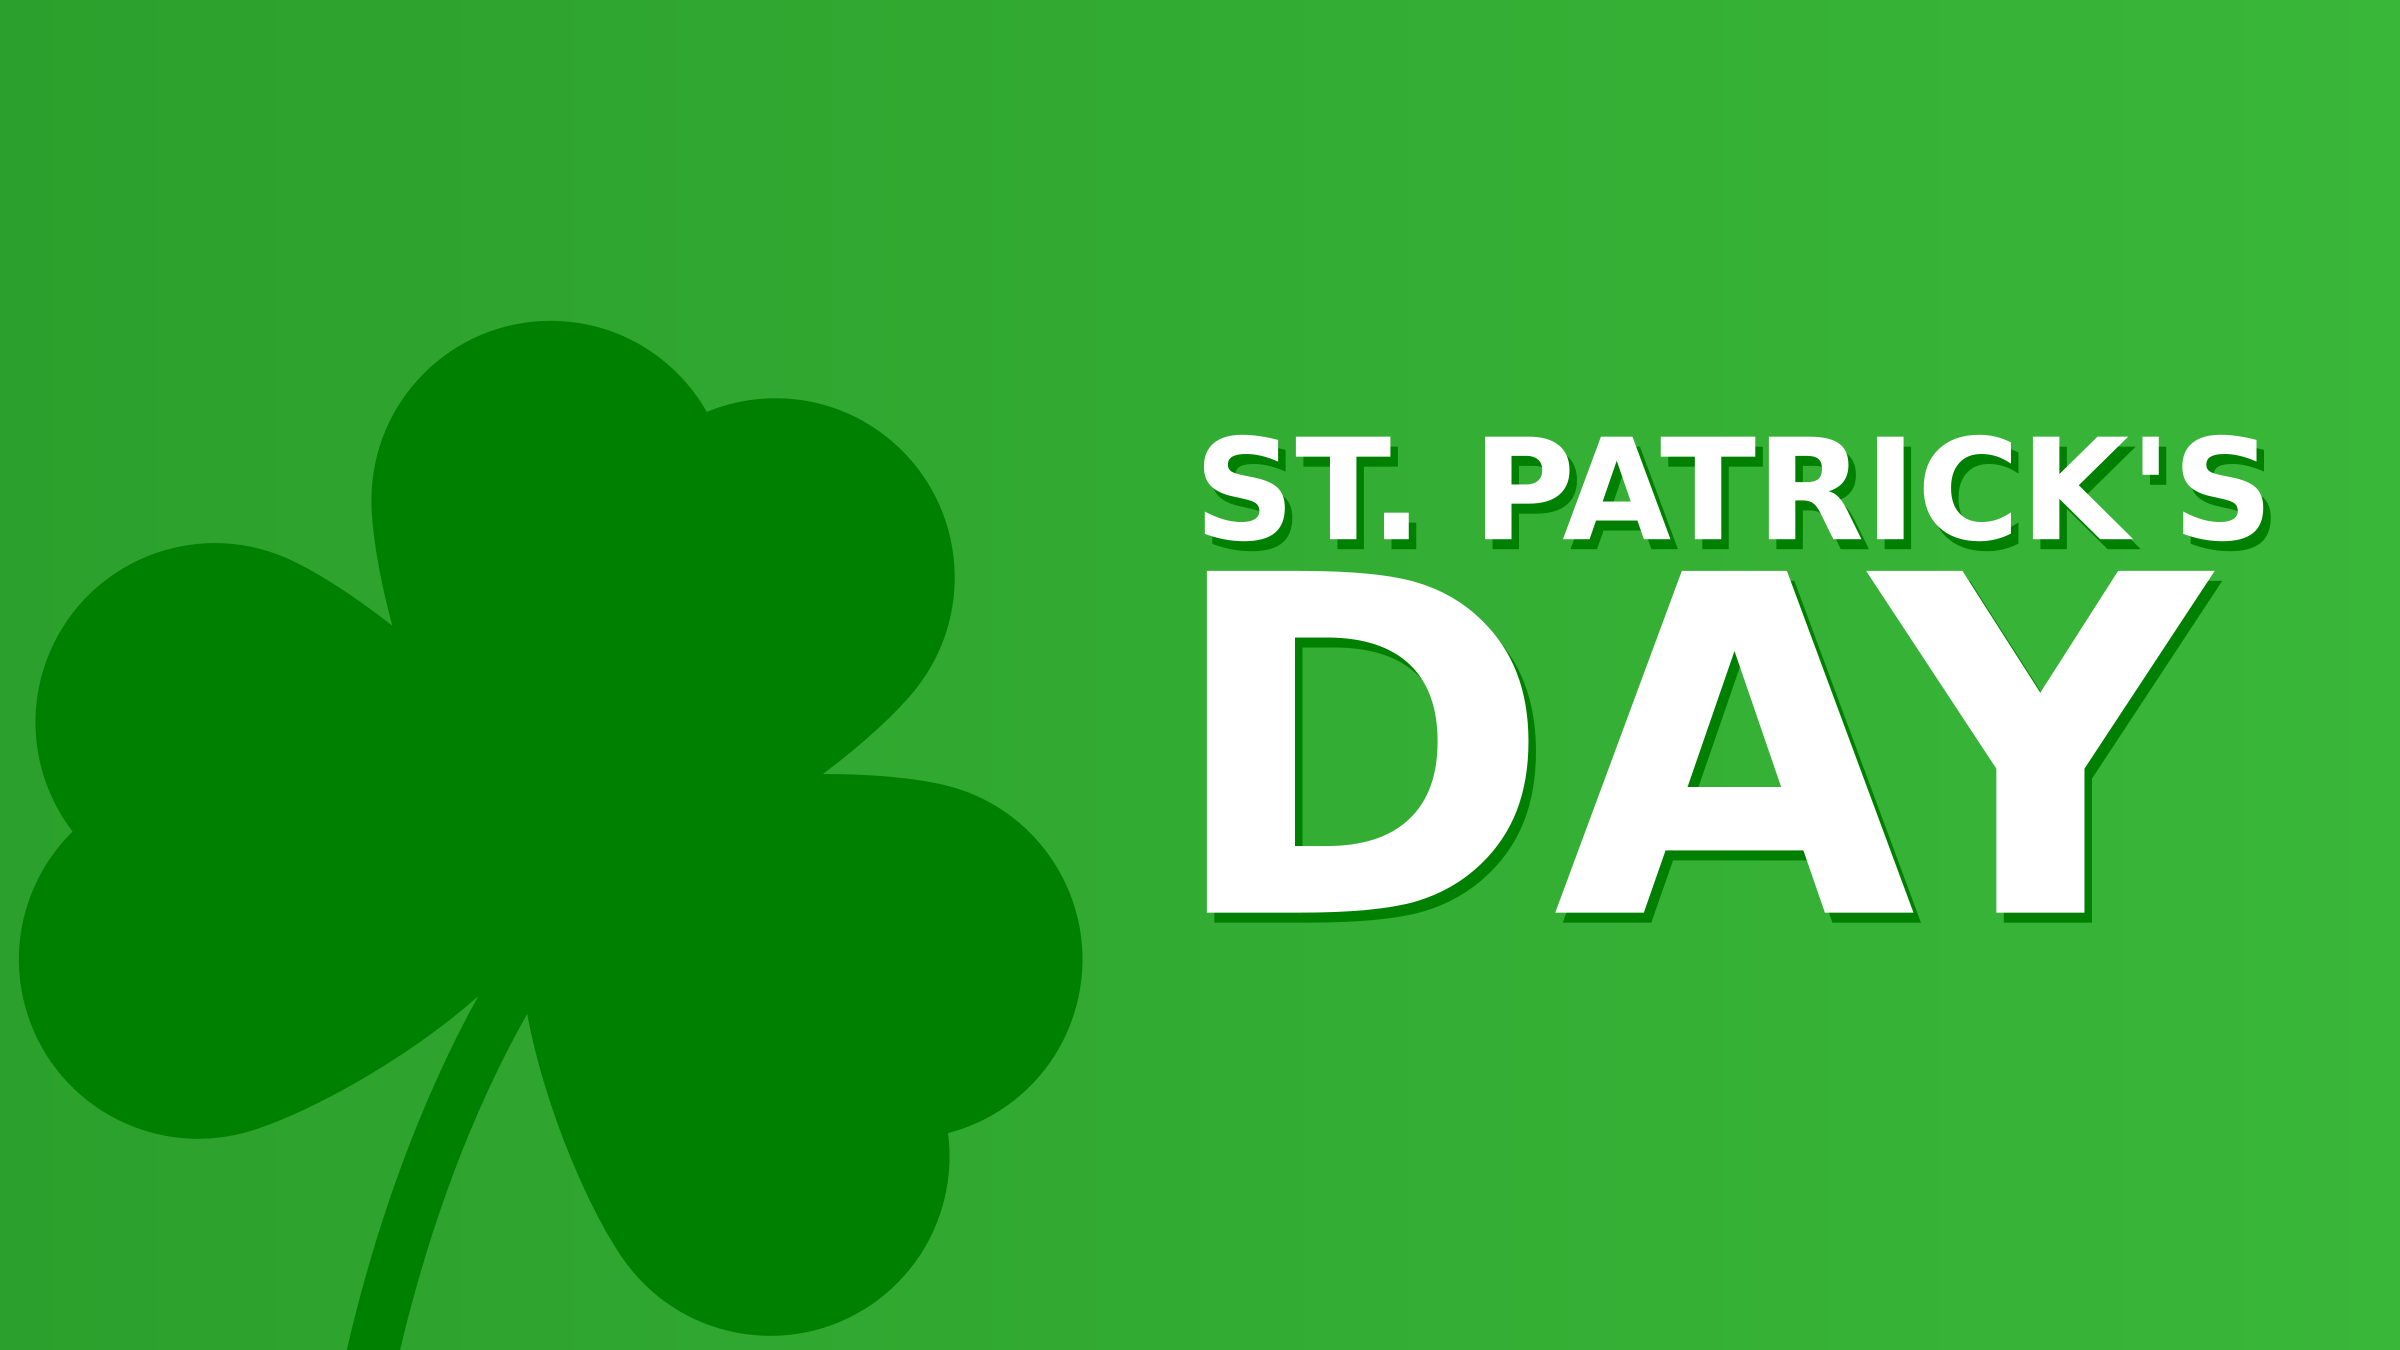 St. Patrick's Day Minimalist Featured Image 16:9 by Maiconfz